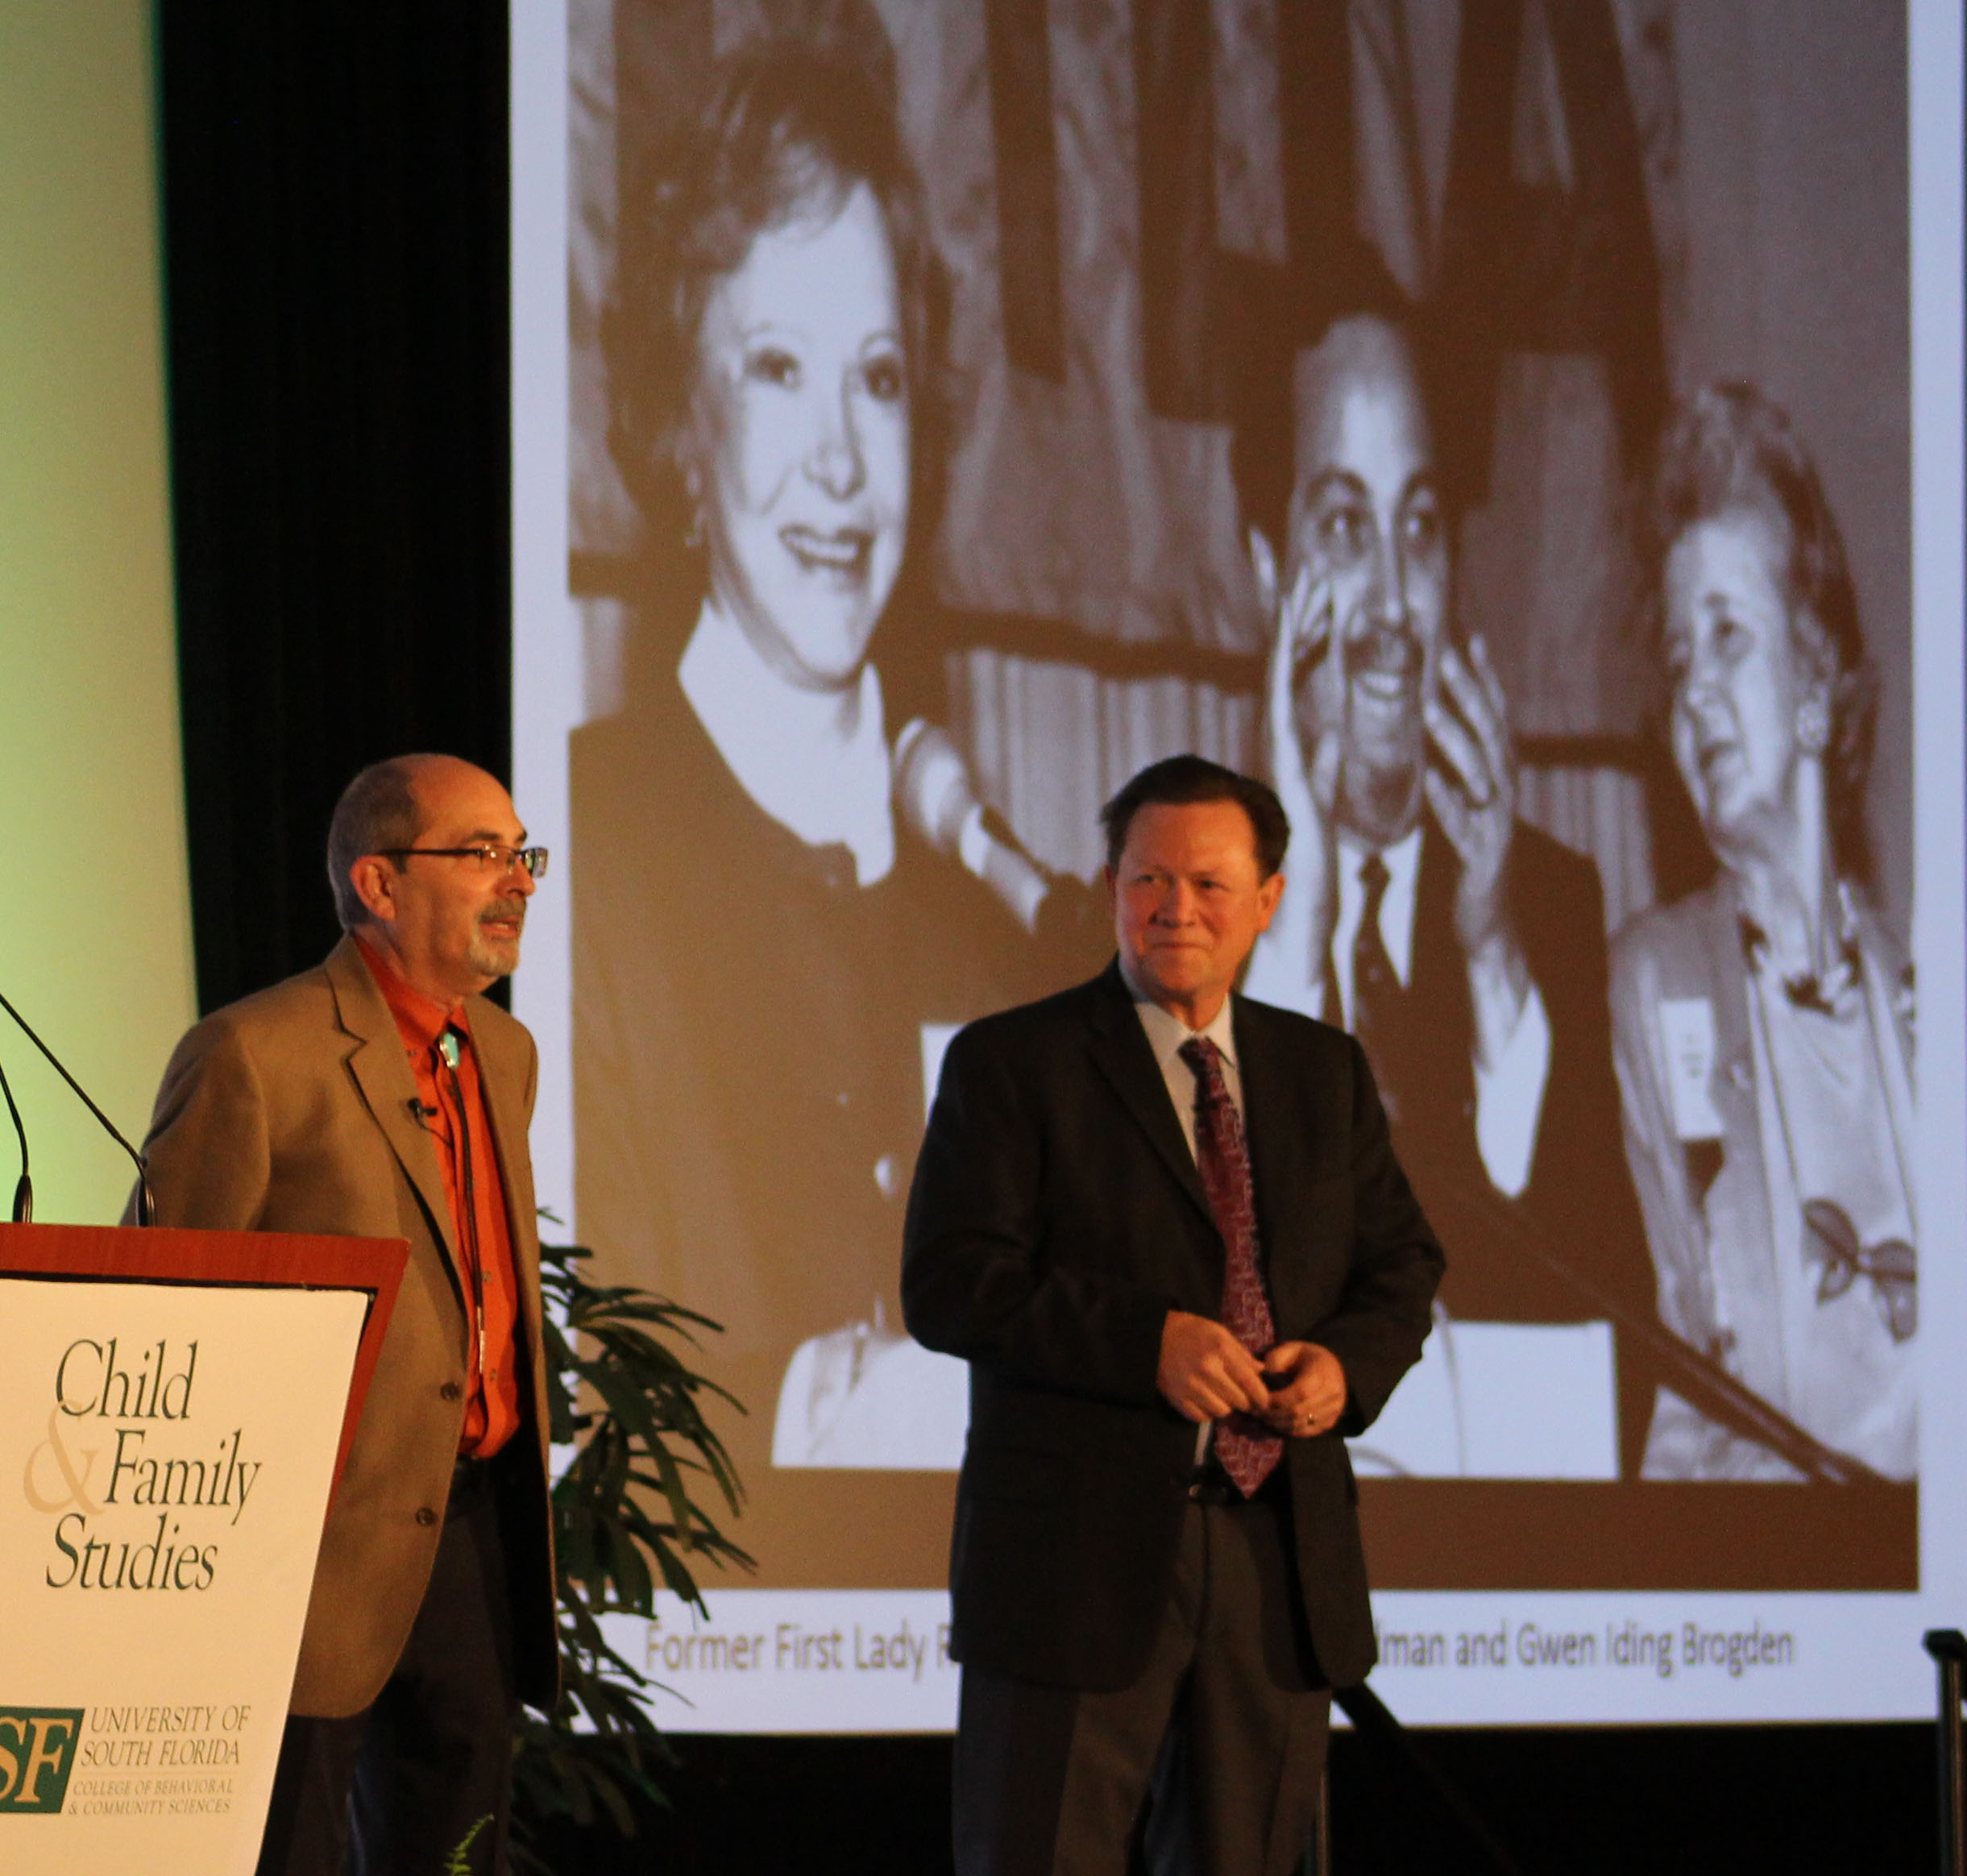 29th Annual Conference on Child, Adolescent & Young Adult Behavioral Health